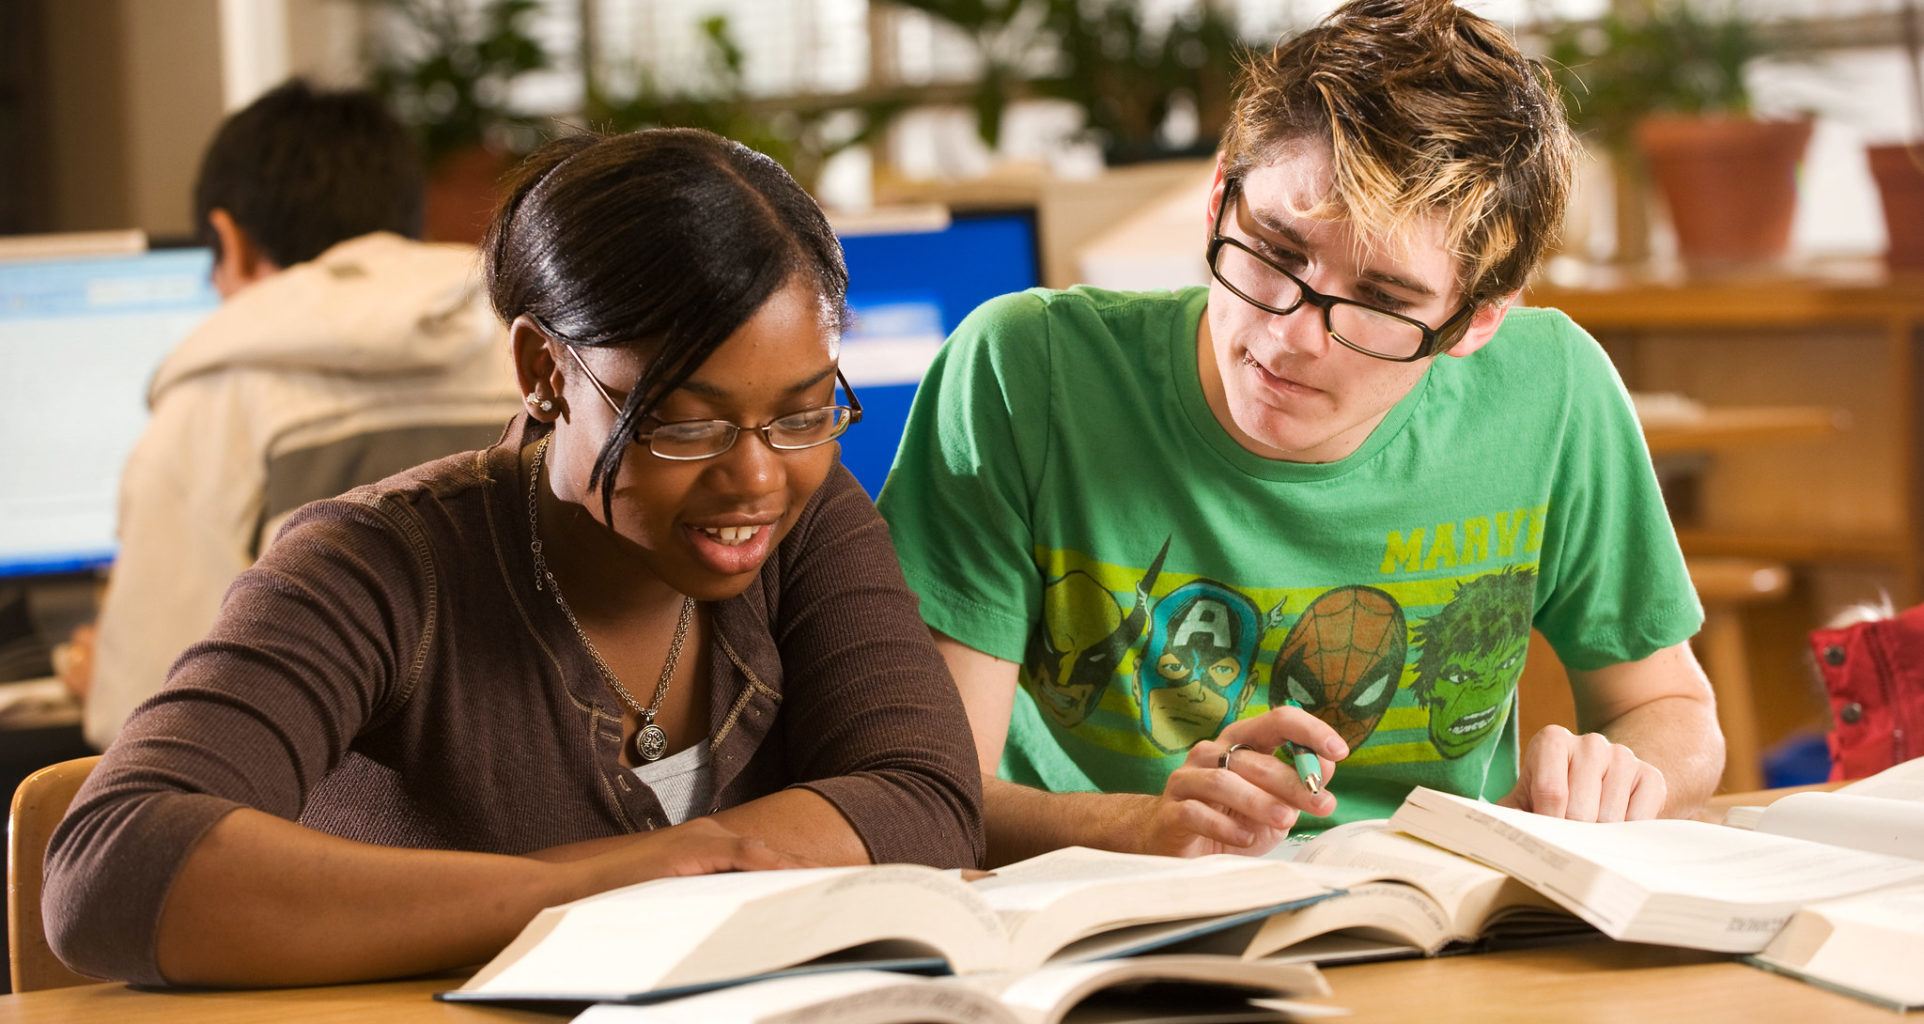 female and male student stying books at table.